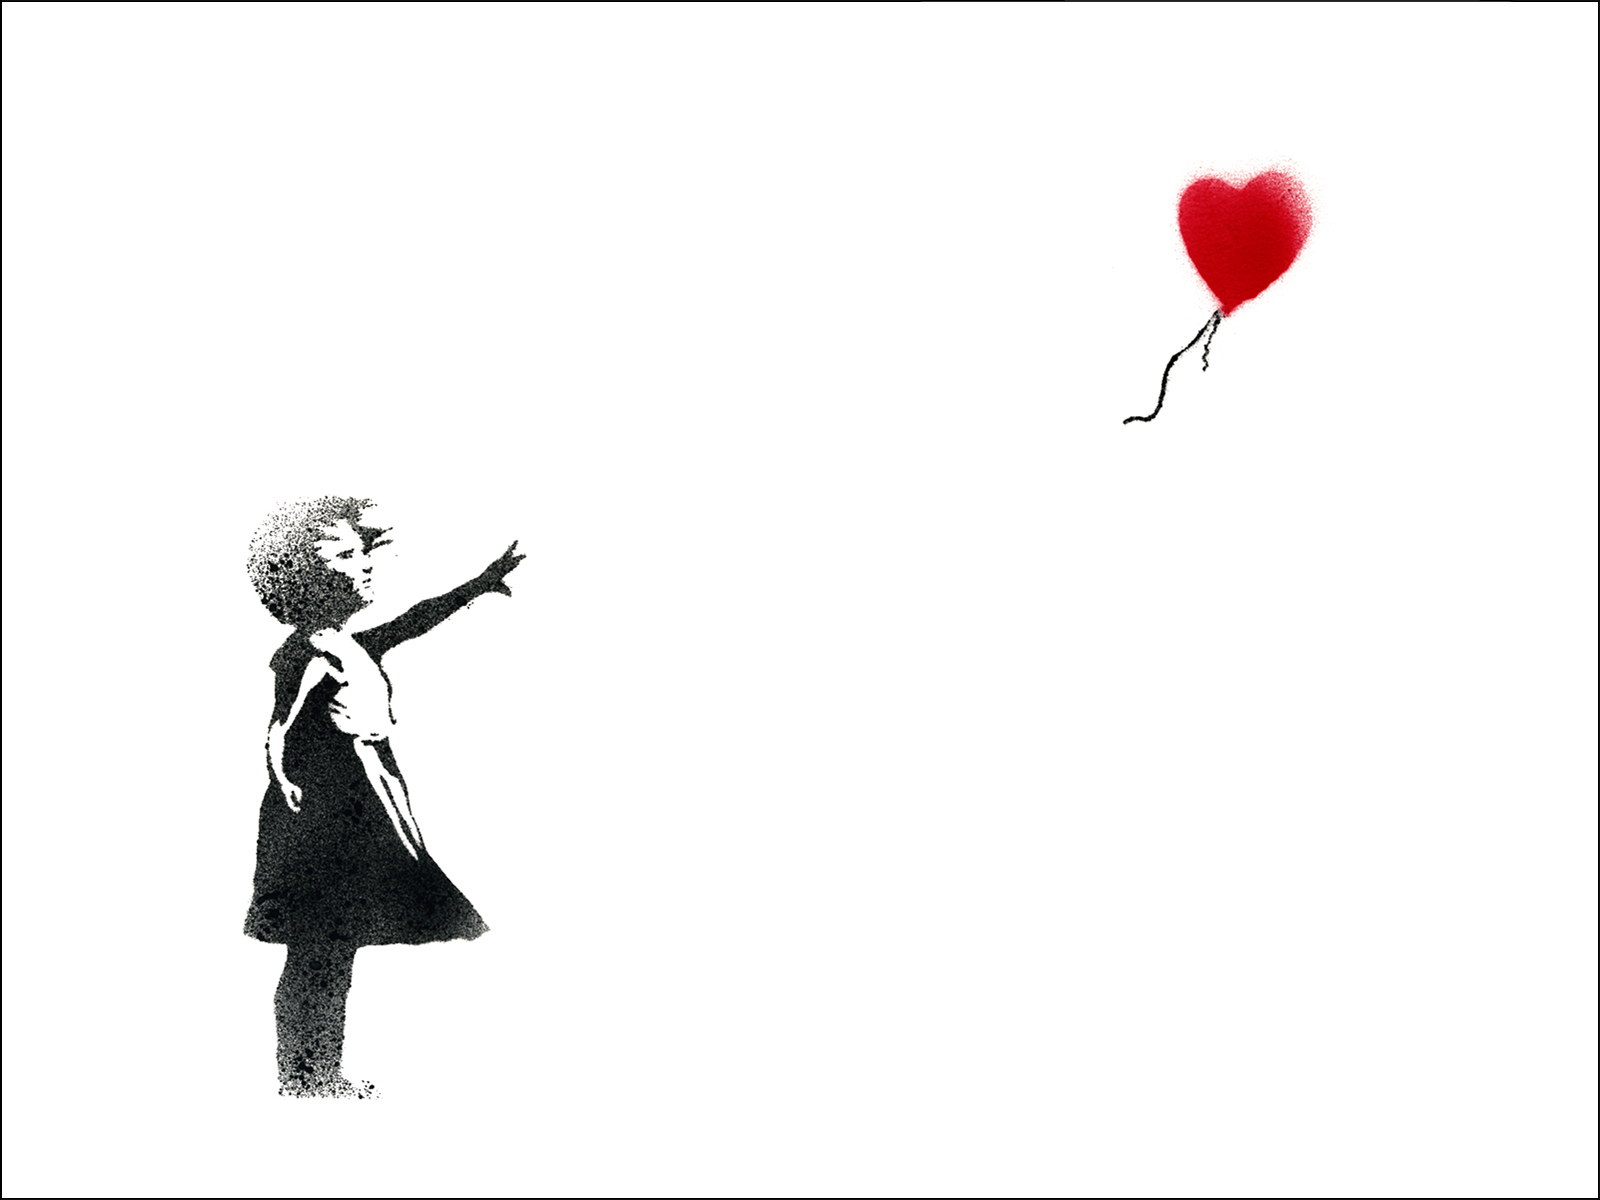 As banksy has shown us with the balloon heart innocence drifting away from the girl images are often less coy with color splashing